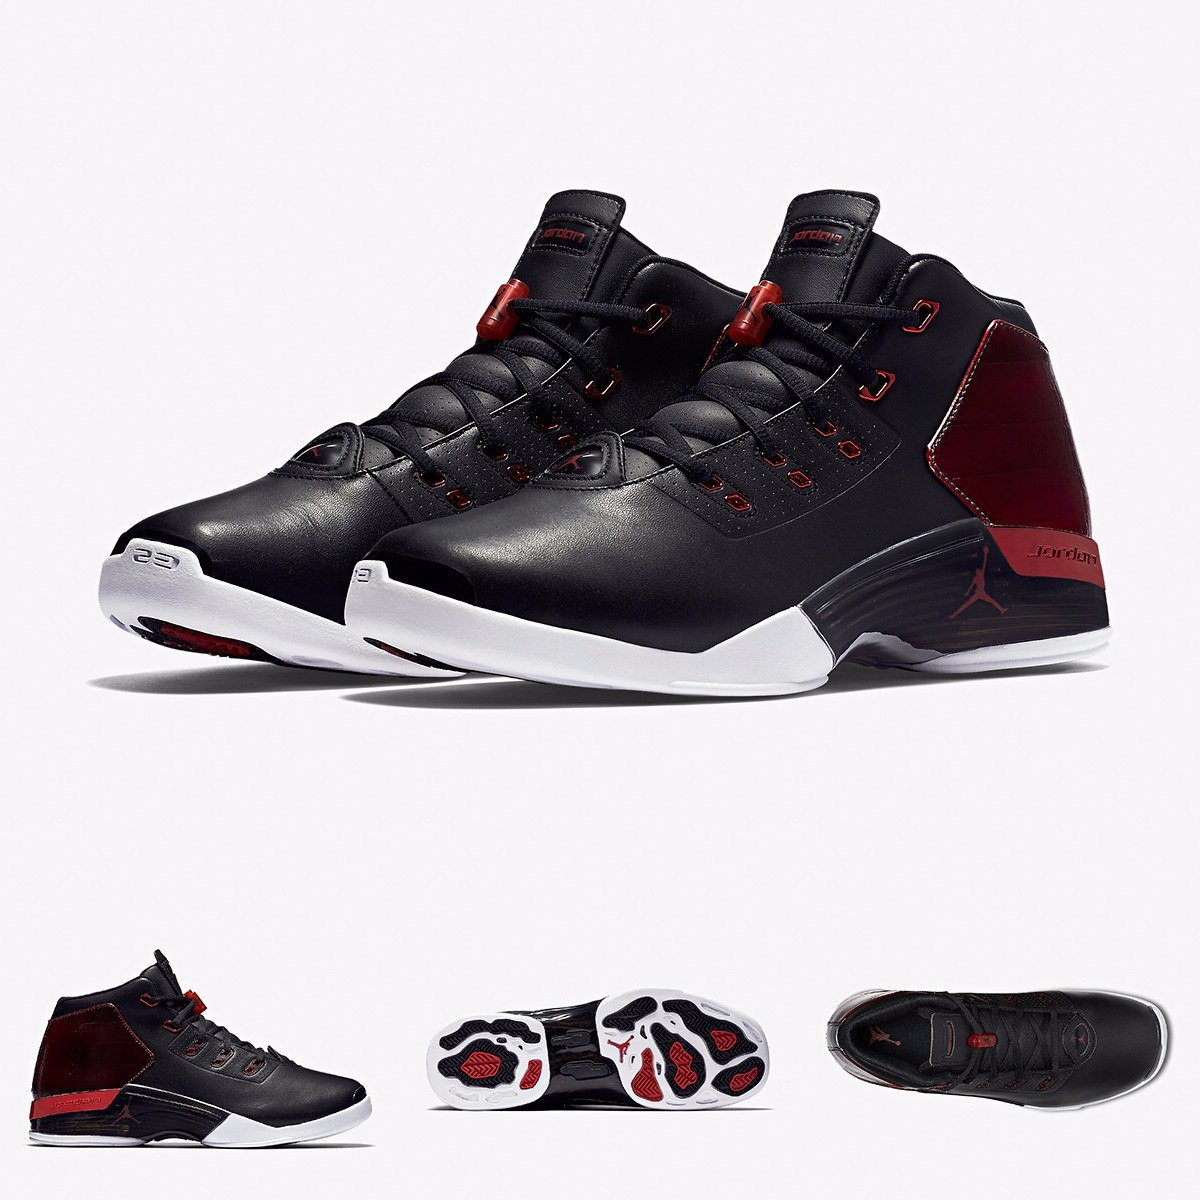 314e44a9fb4 zapatillas nike air jordan retro 17 bulls original negro. Cargando zoom.